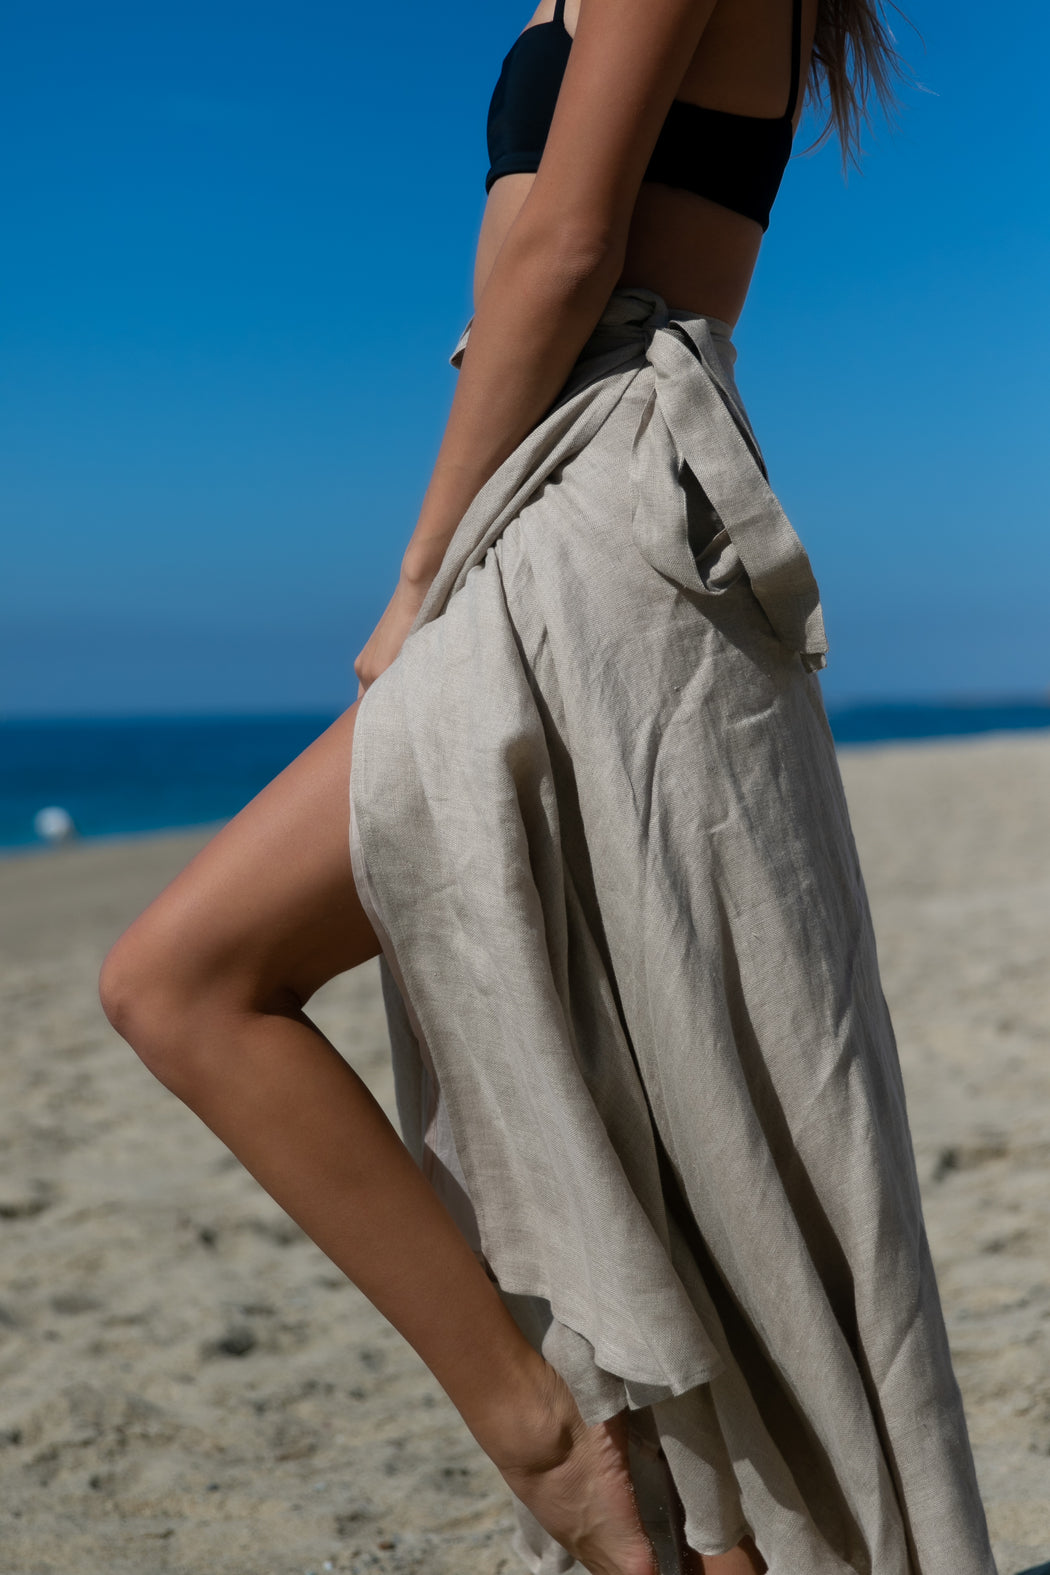 The Swamis Wrap Skirt in Beige